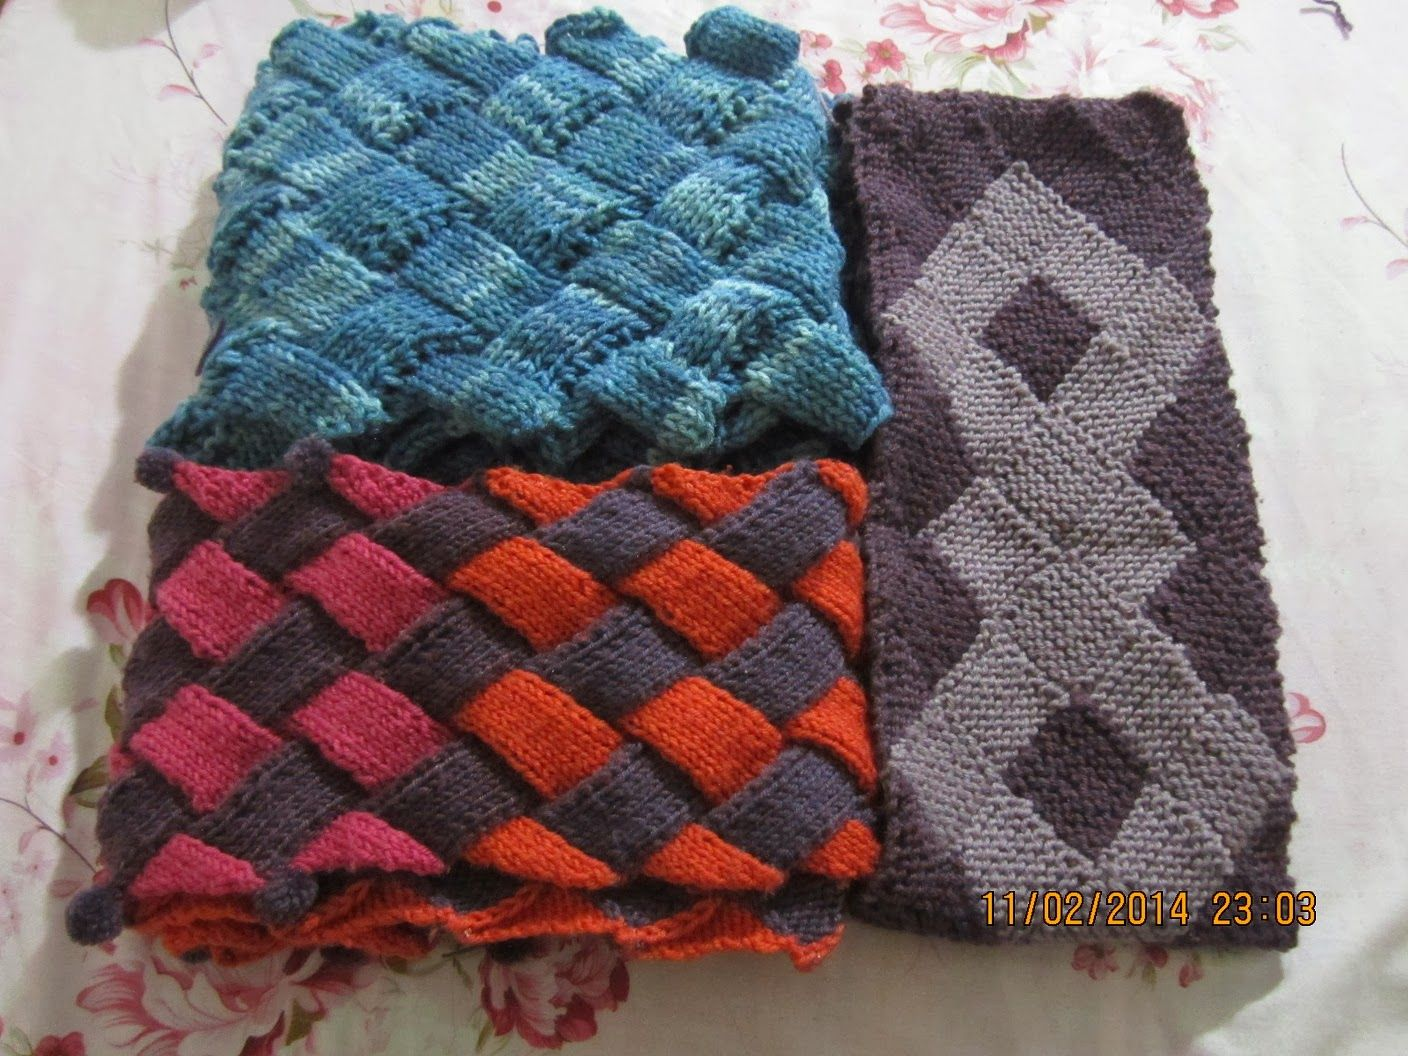 Learn how to knit entrelac with video at youtube knitting learn how to knit entrelac scarf knitting on you tube bankloansurffo Gallery